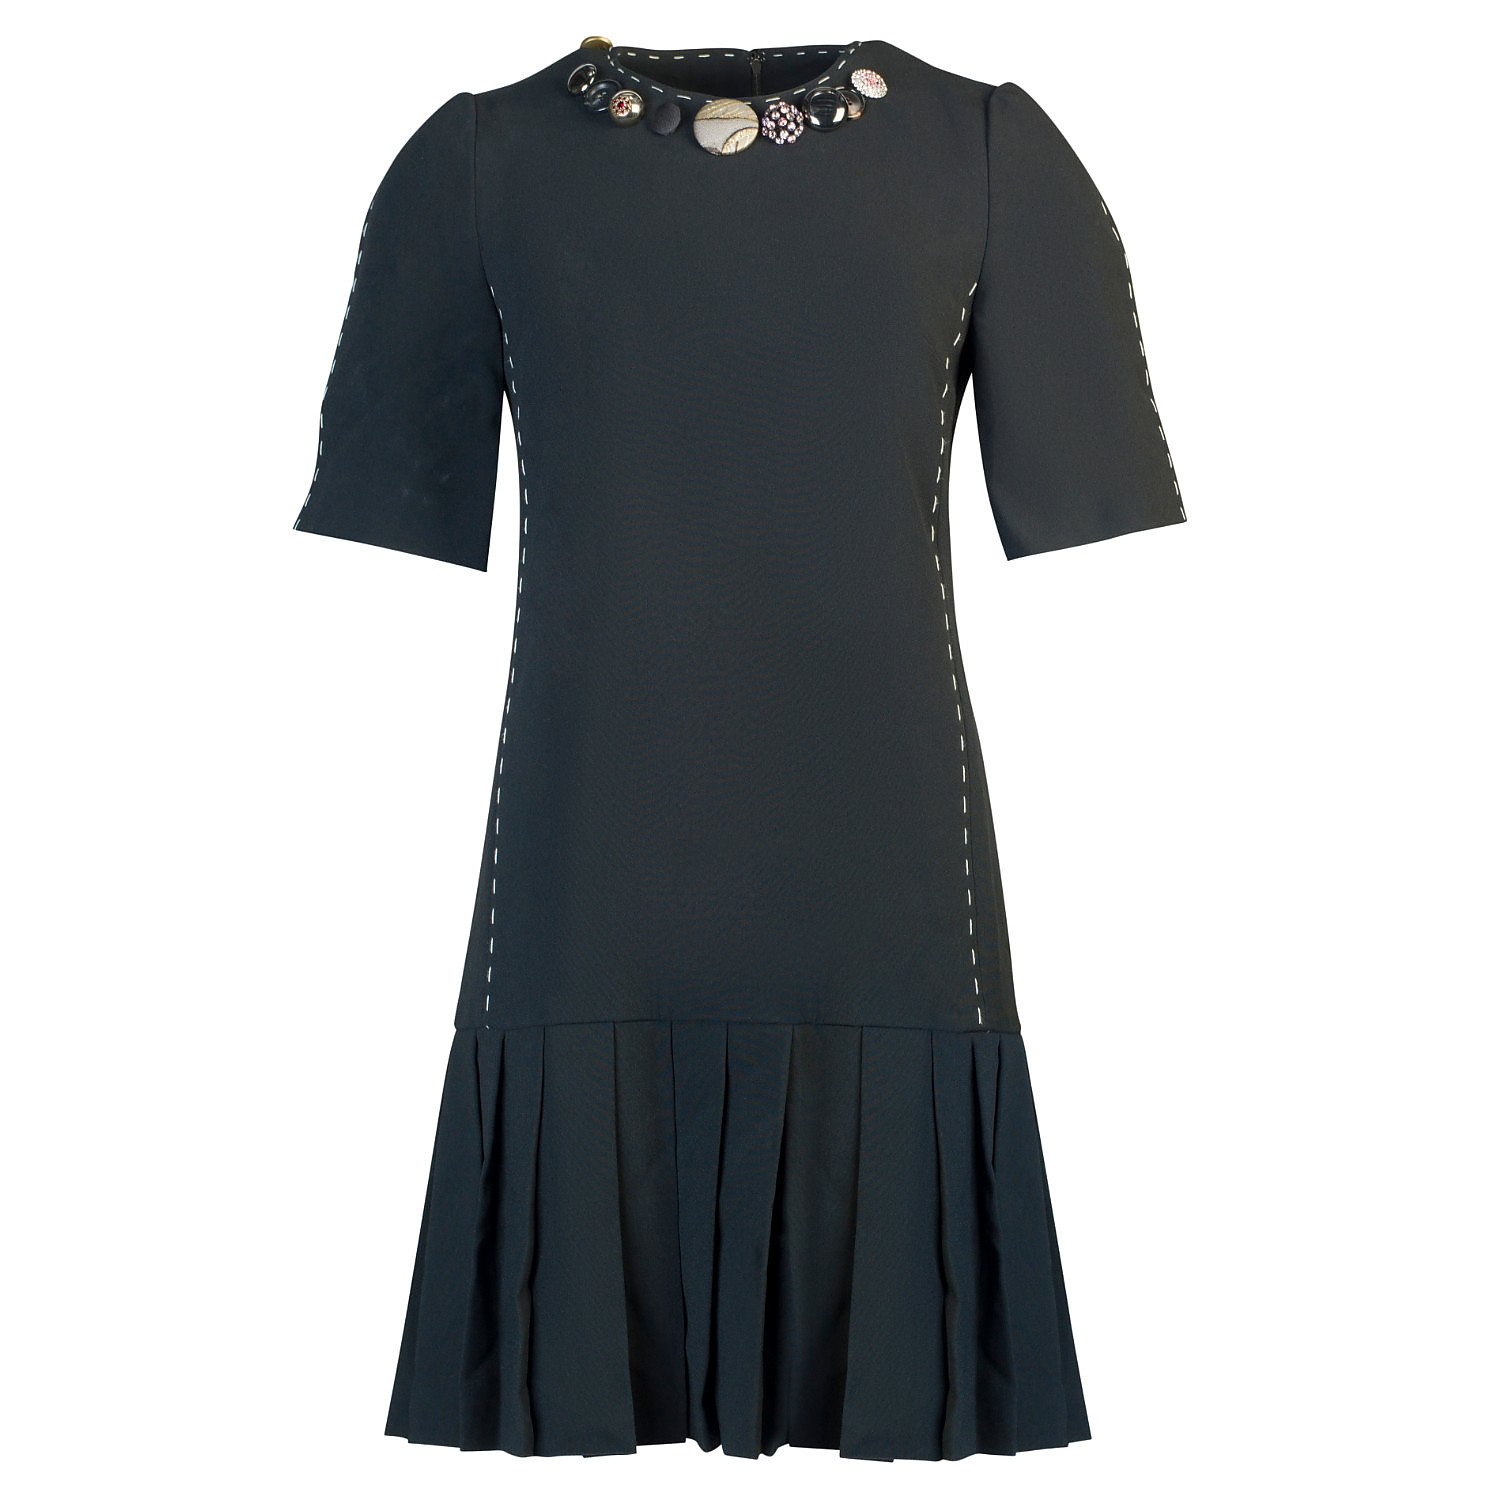 DOLCE & GABBANA Button-Embellished Pleated Dress